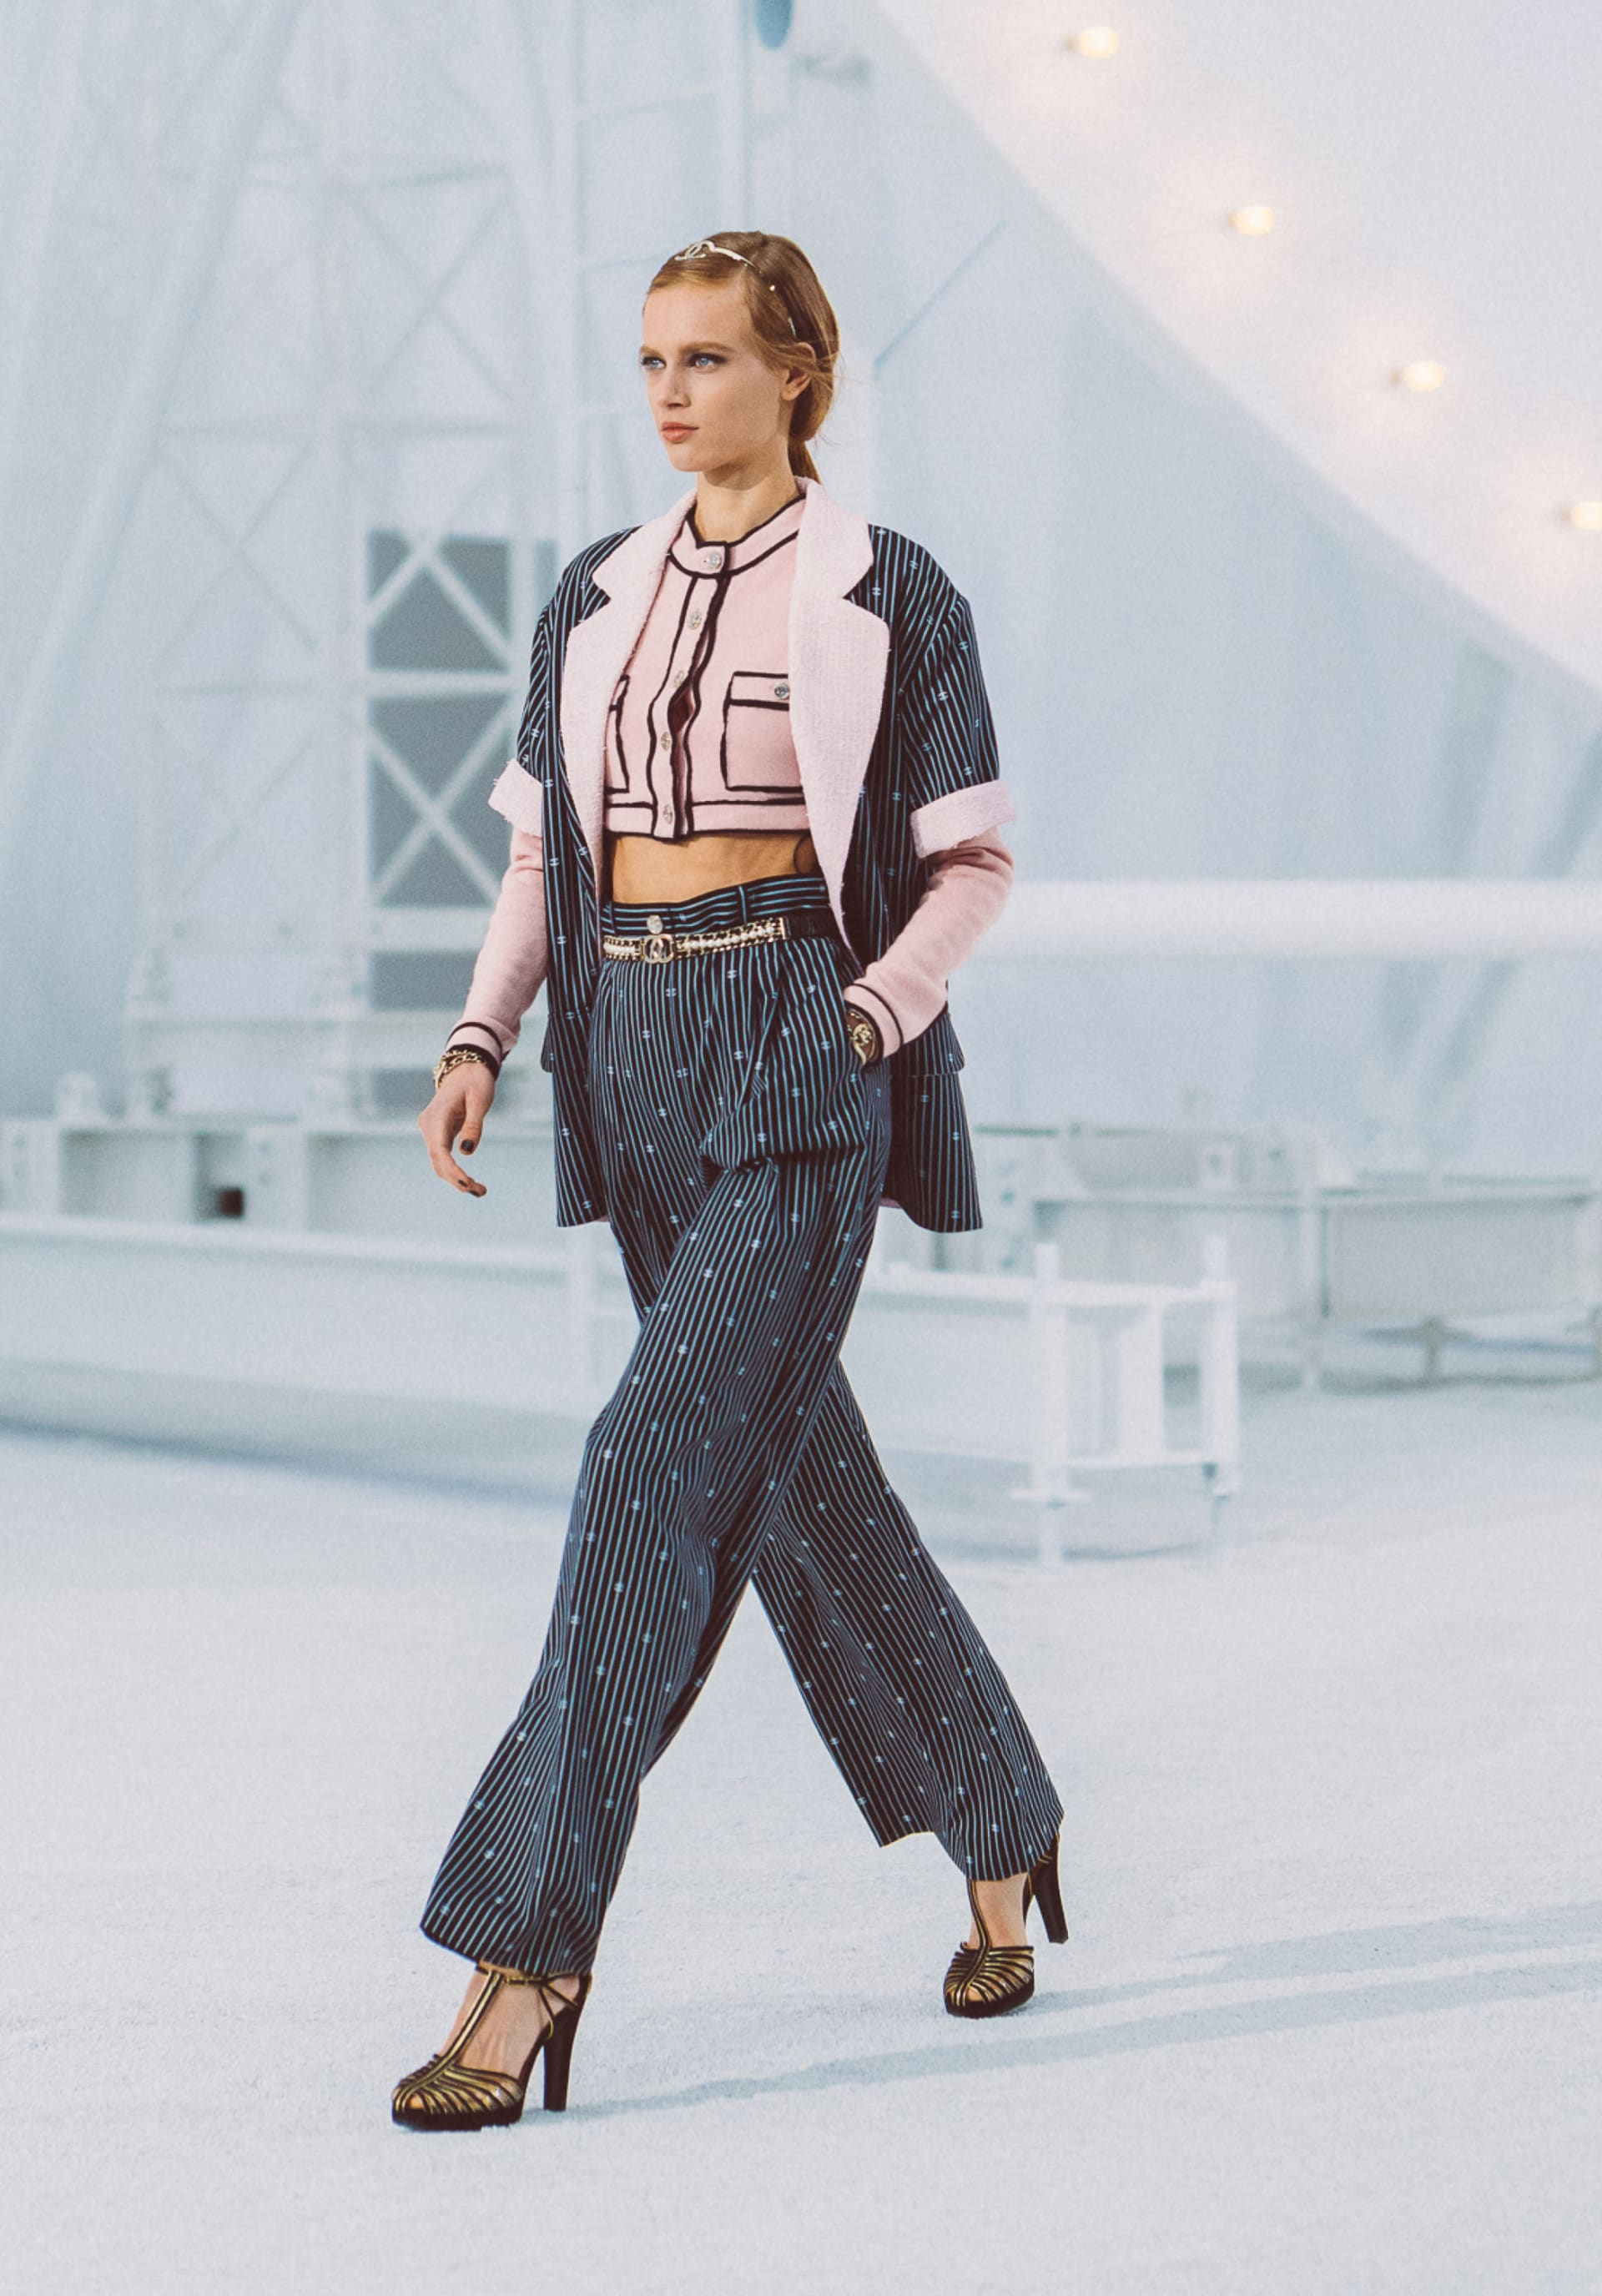 View 1 - Look10 - Spring-Summer 2021 - see full sized version